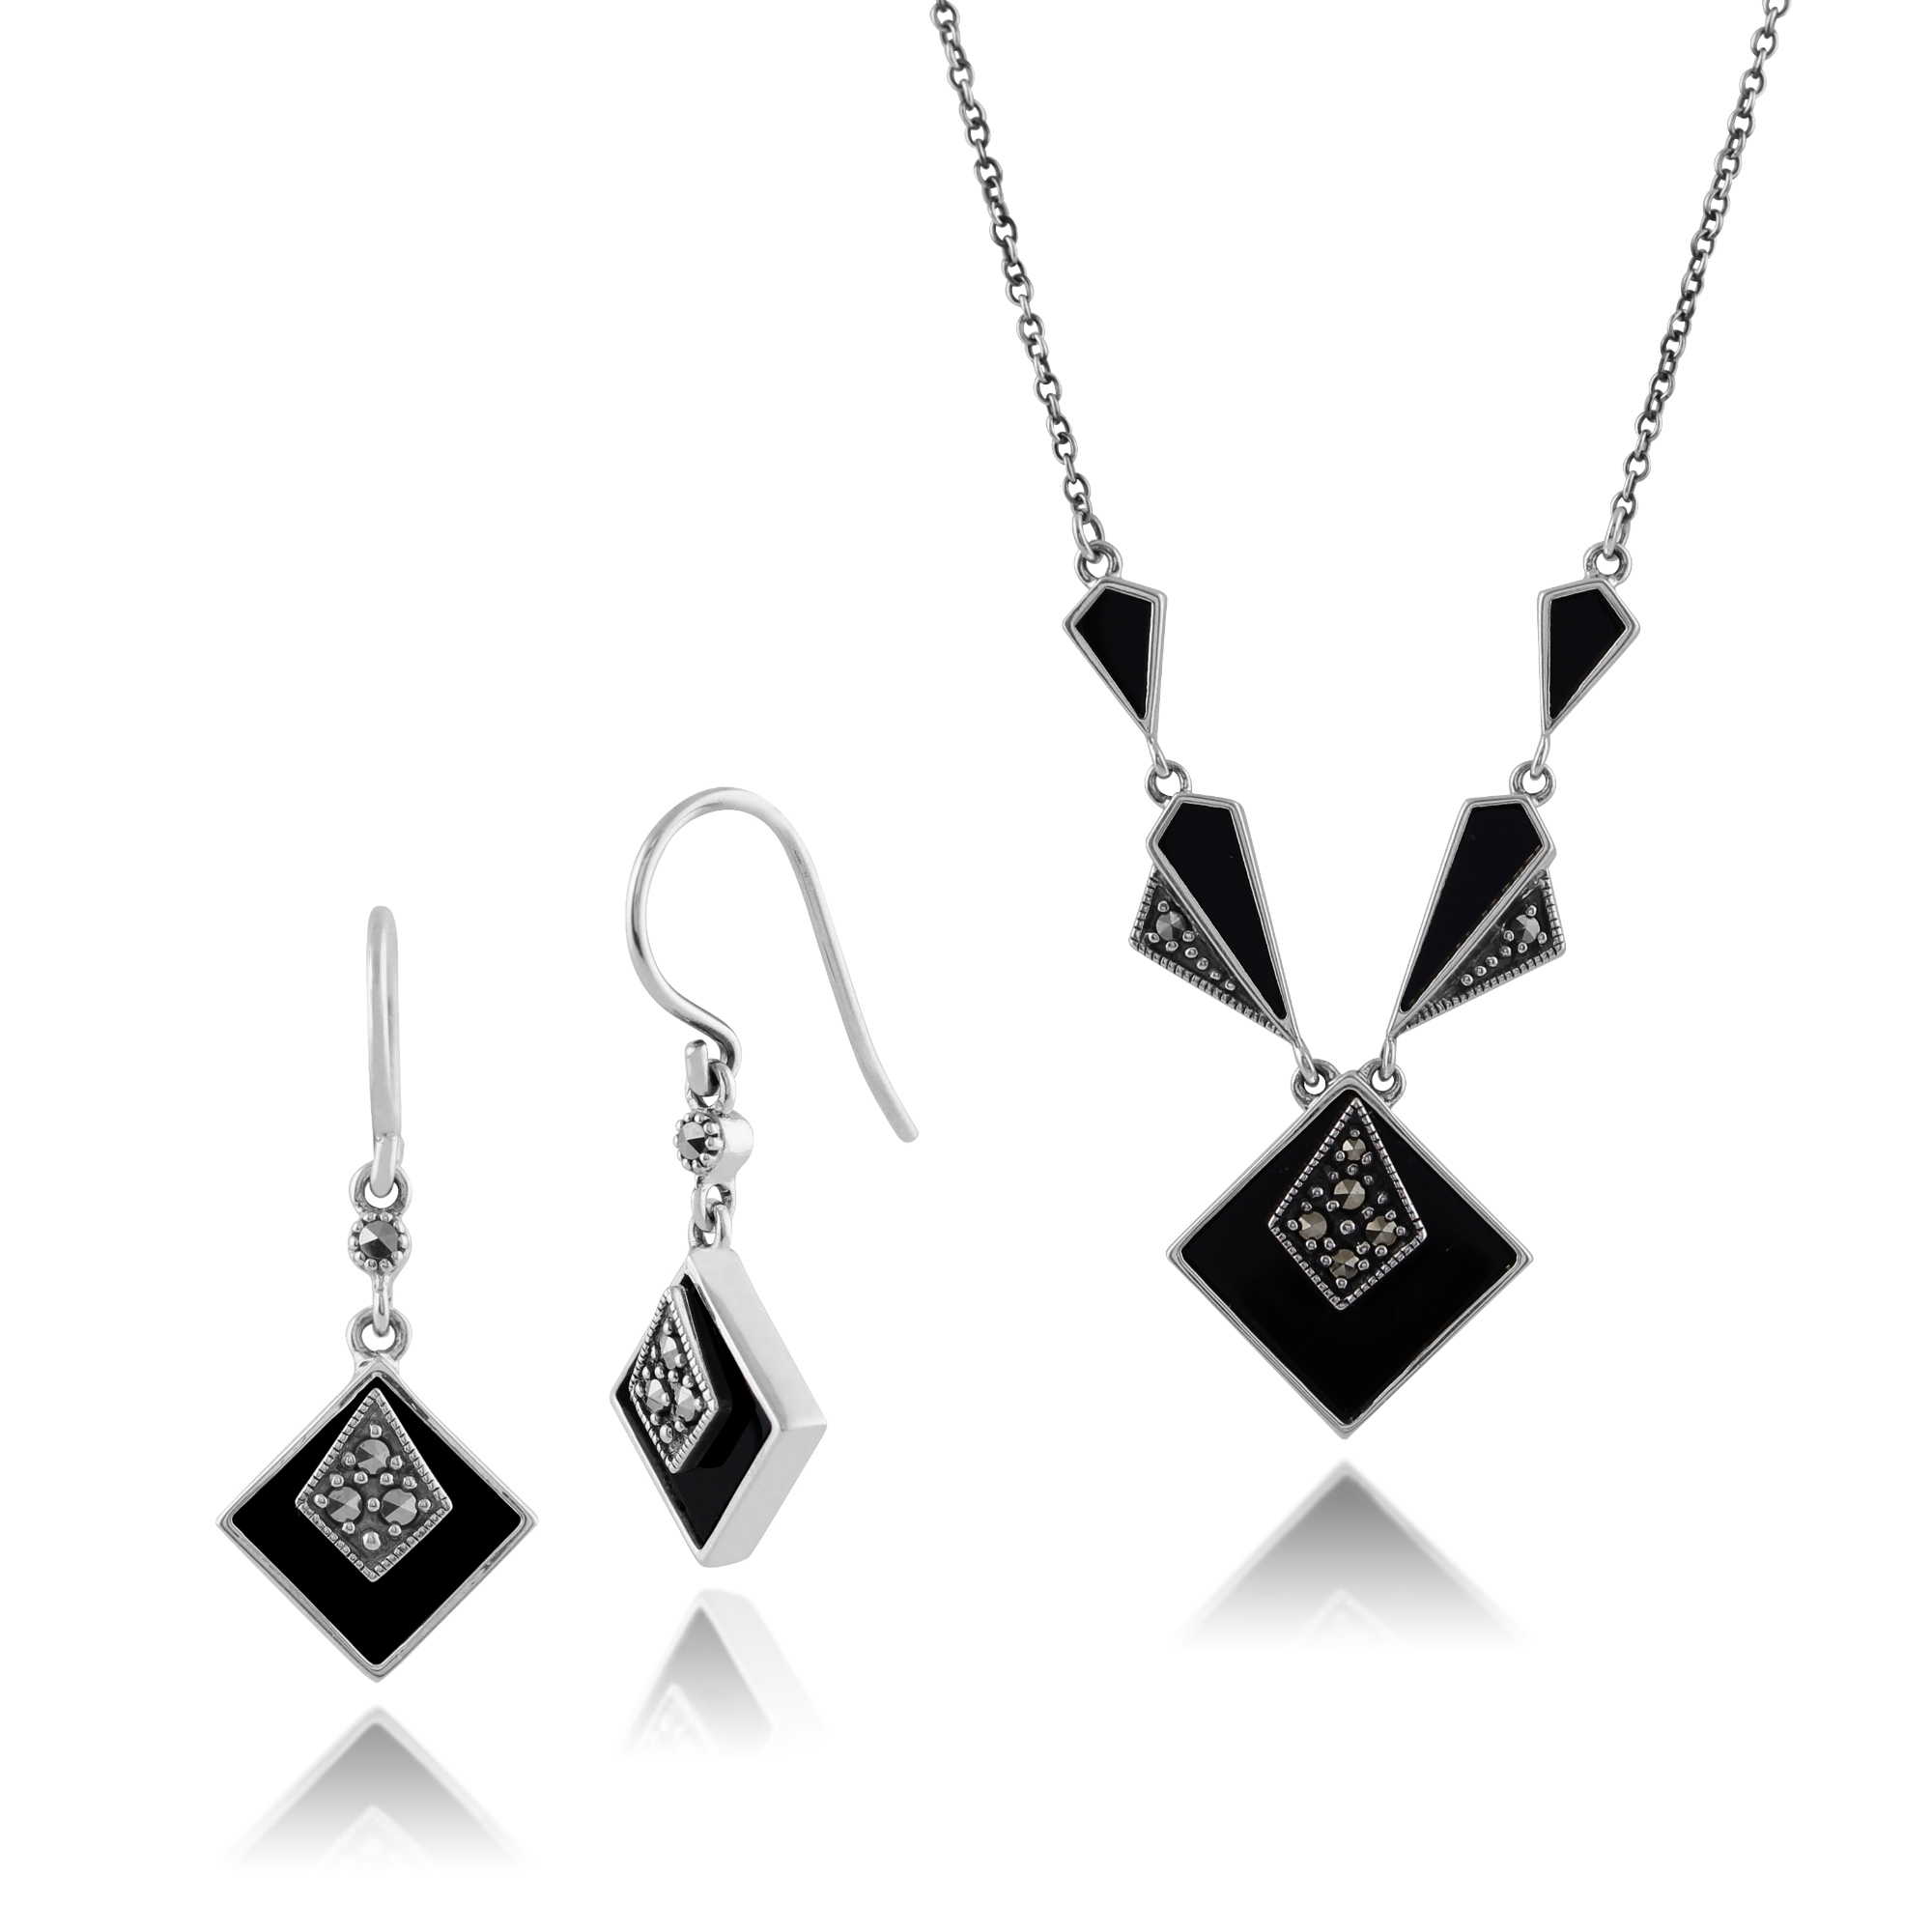 925 Sterling Silver Black Onyx & Marcasite Drop Earrings & 45cm Necklace Set